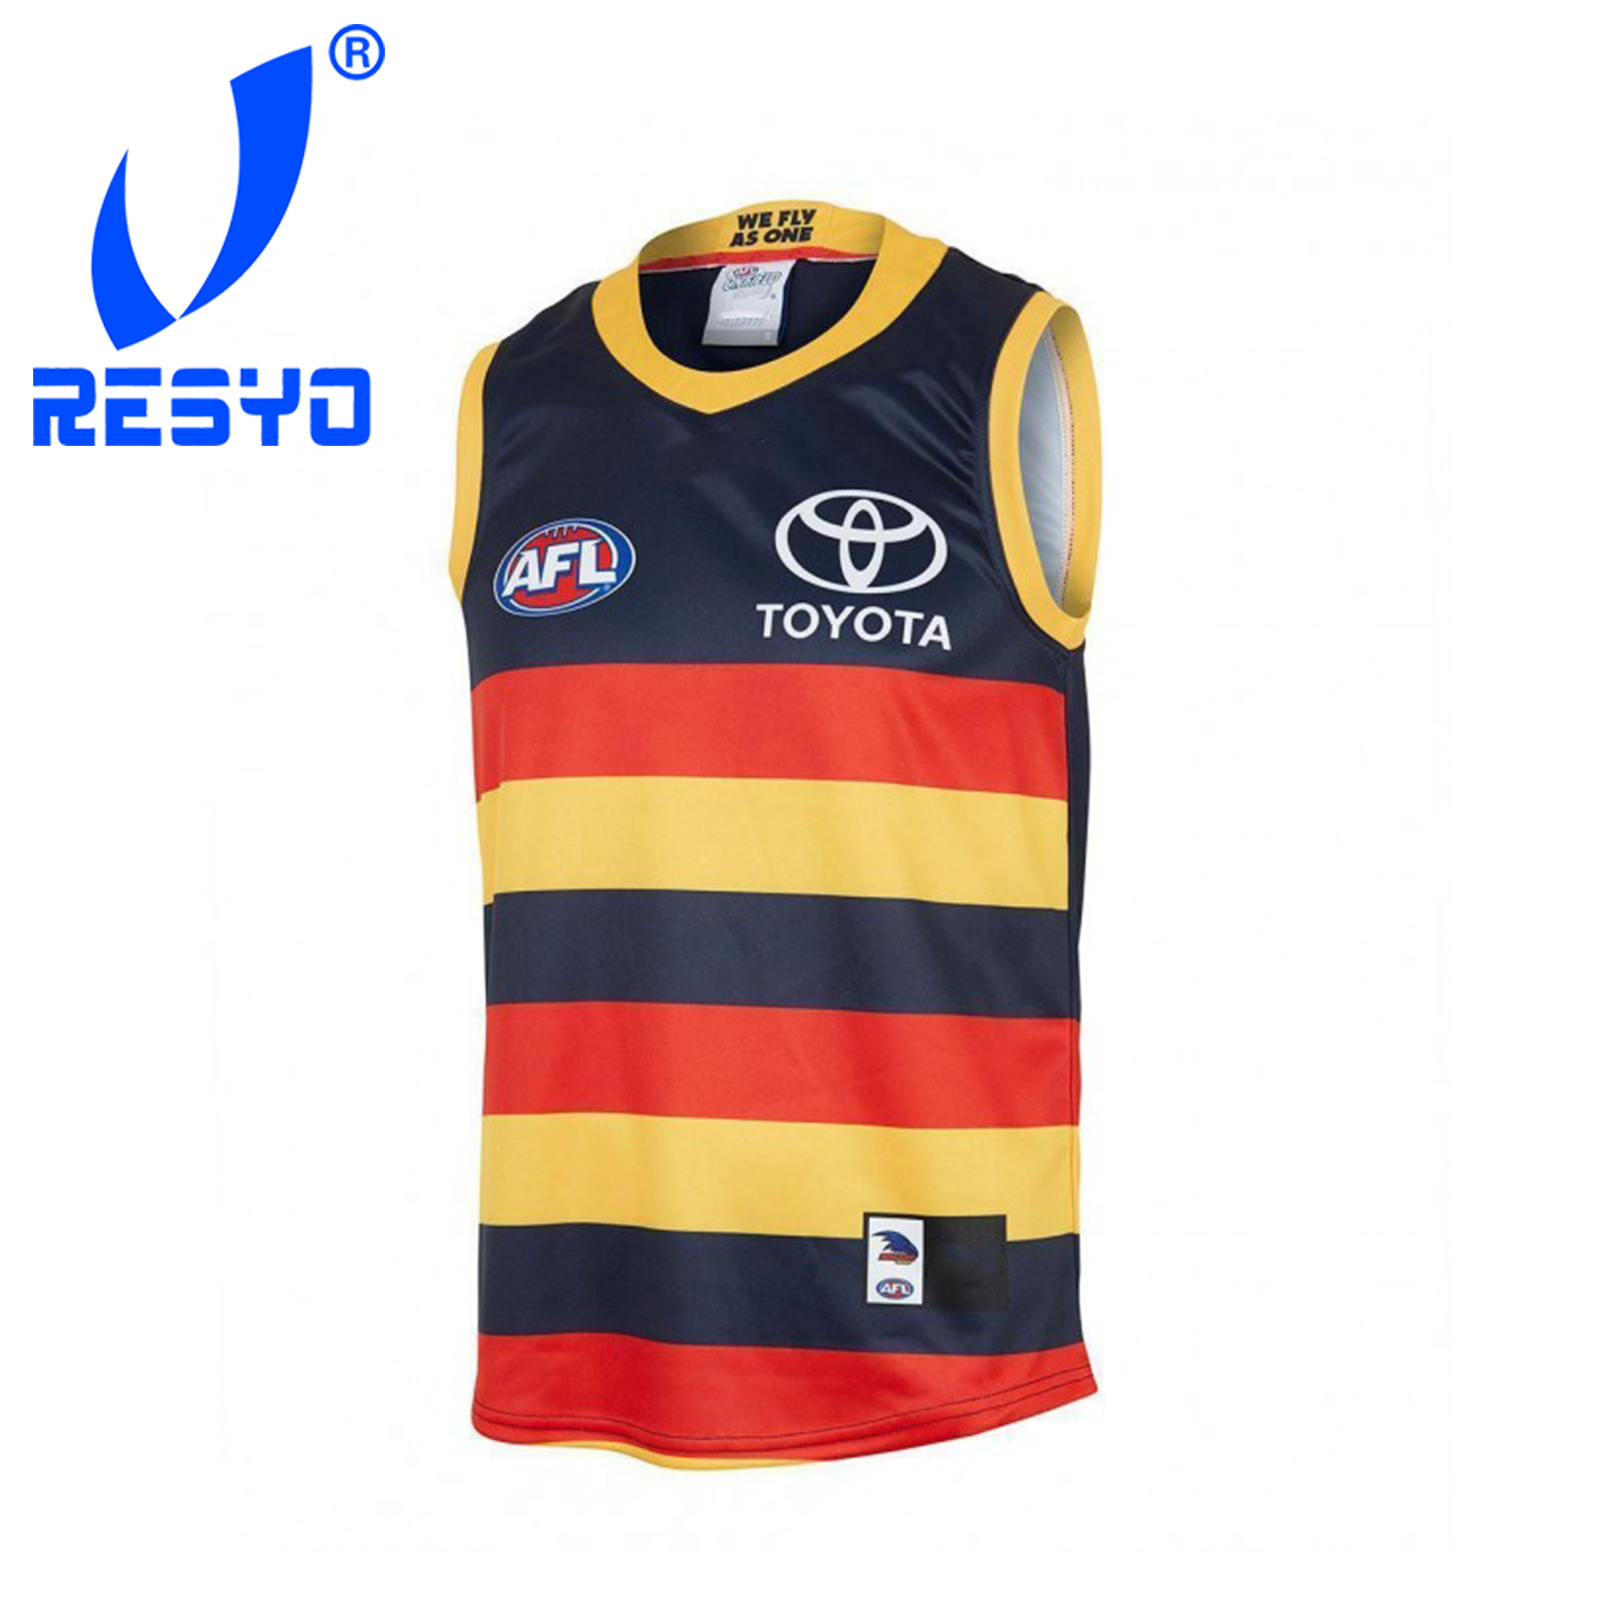 RESYO For AFL Adelaide Crows 2019 Men's Home Guernsey Rugby Jersey Sport Shirt